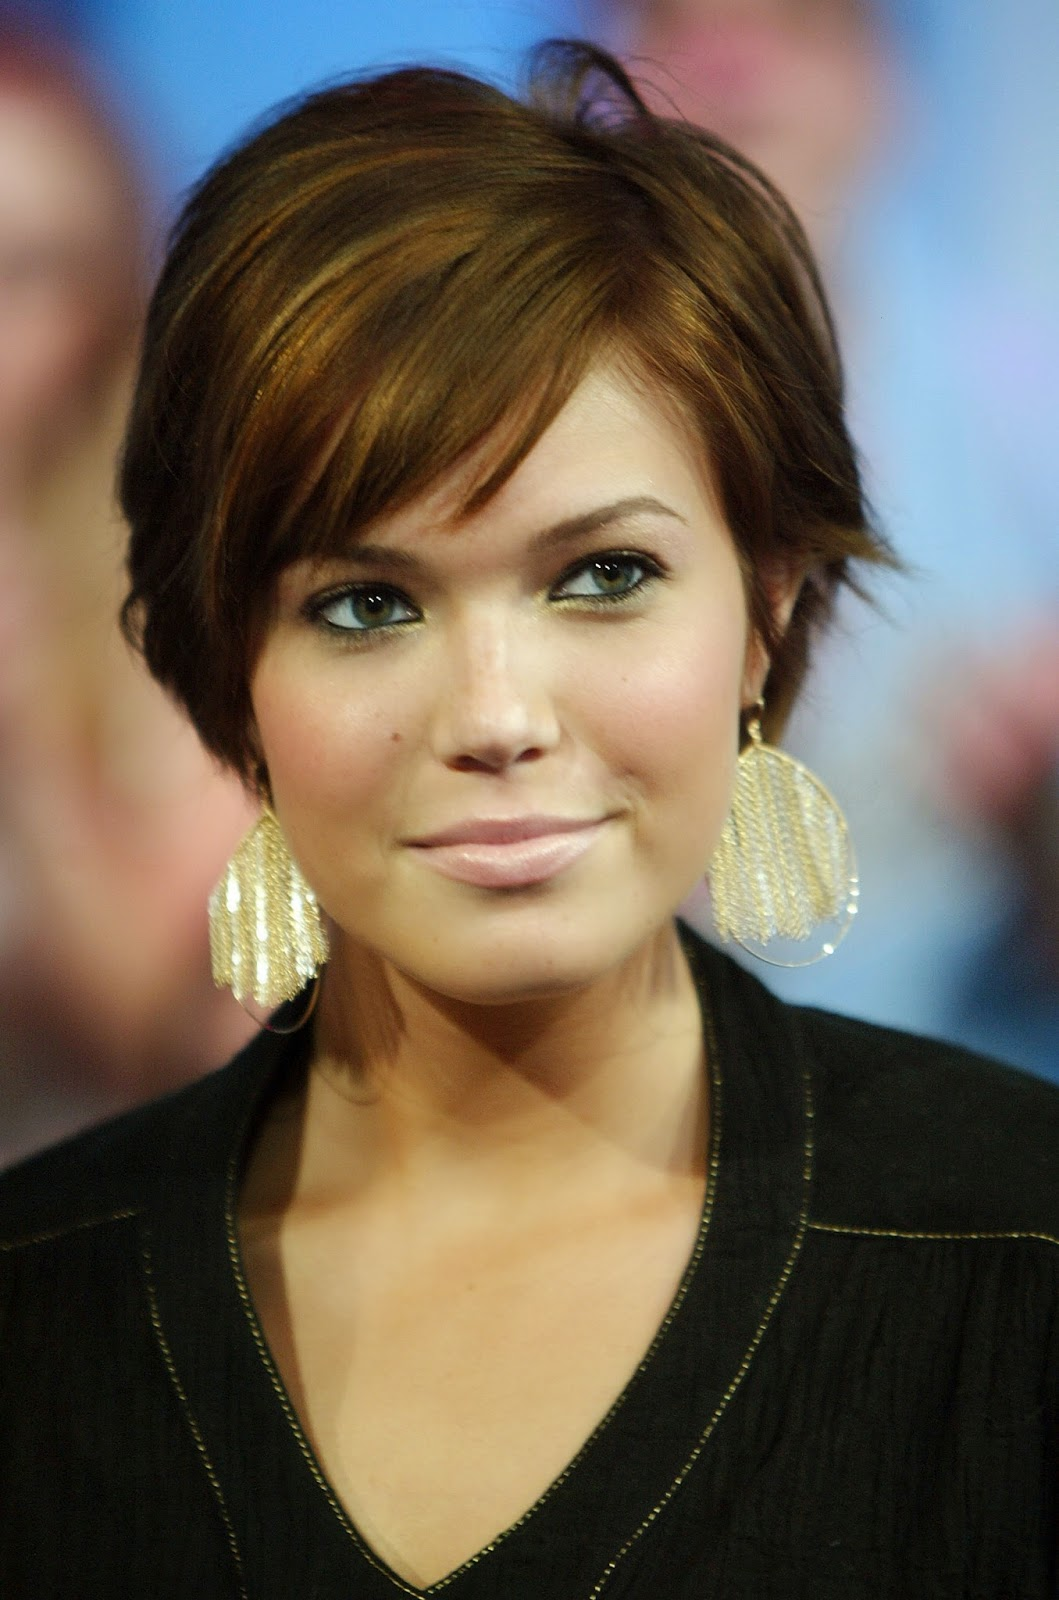 Sensational Hairstyles Short Hairstyles For Women With Straight And Fine Hair Hairstyles For Women Draintrainus